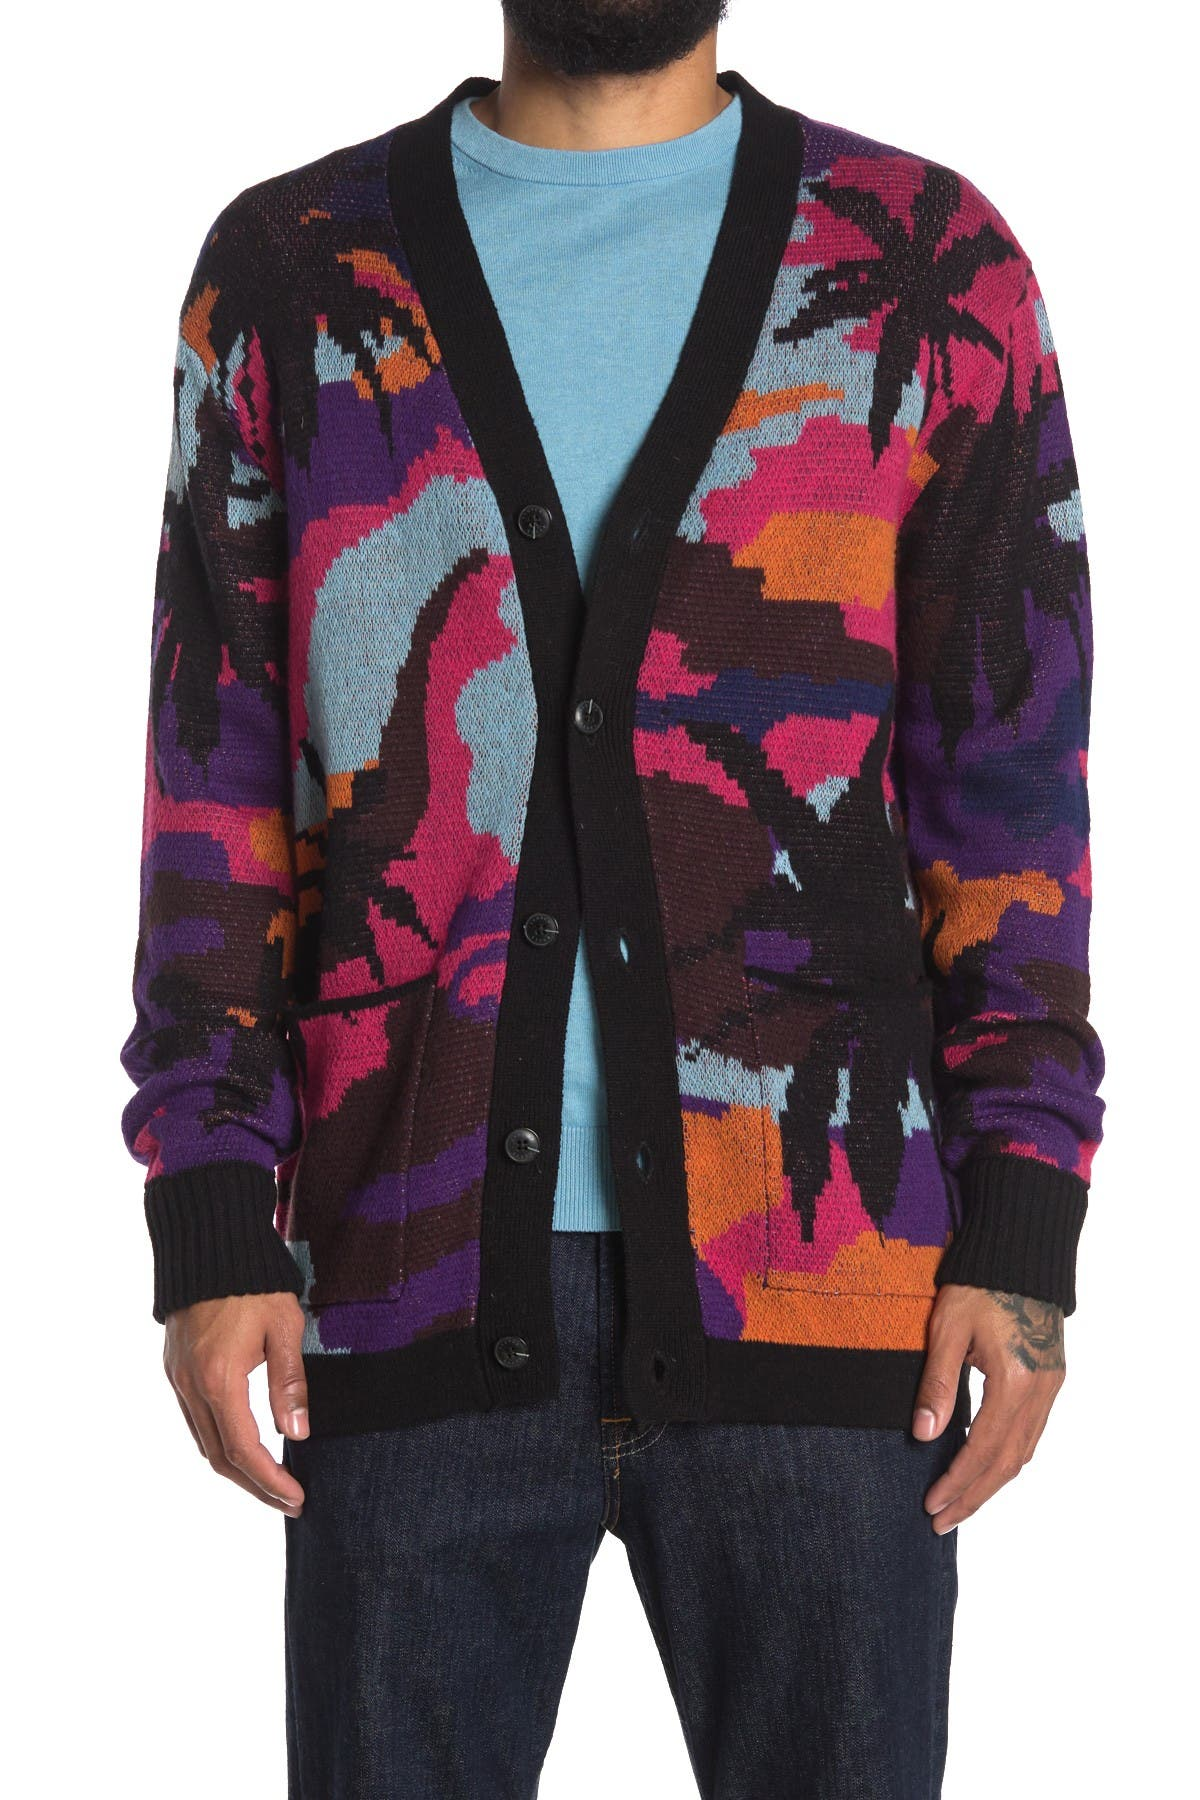 Image of Scotch & Soda Colorful Jacquard Wool Blend Cardigan